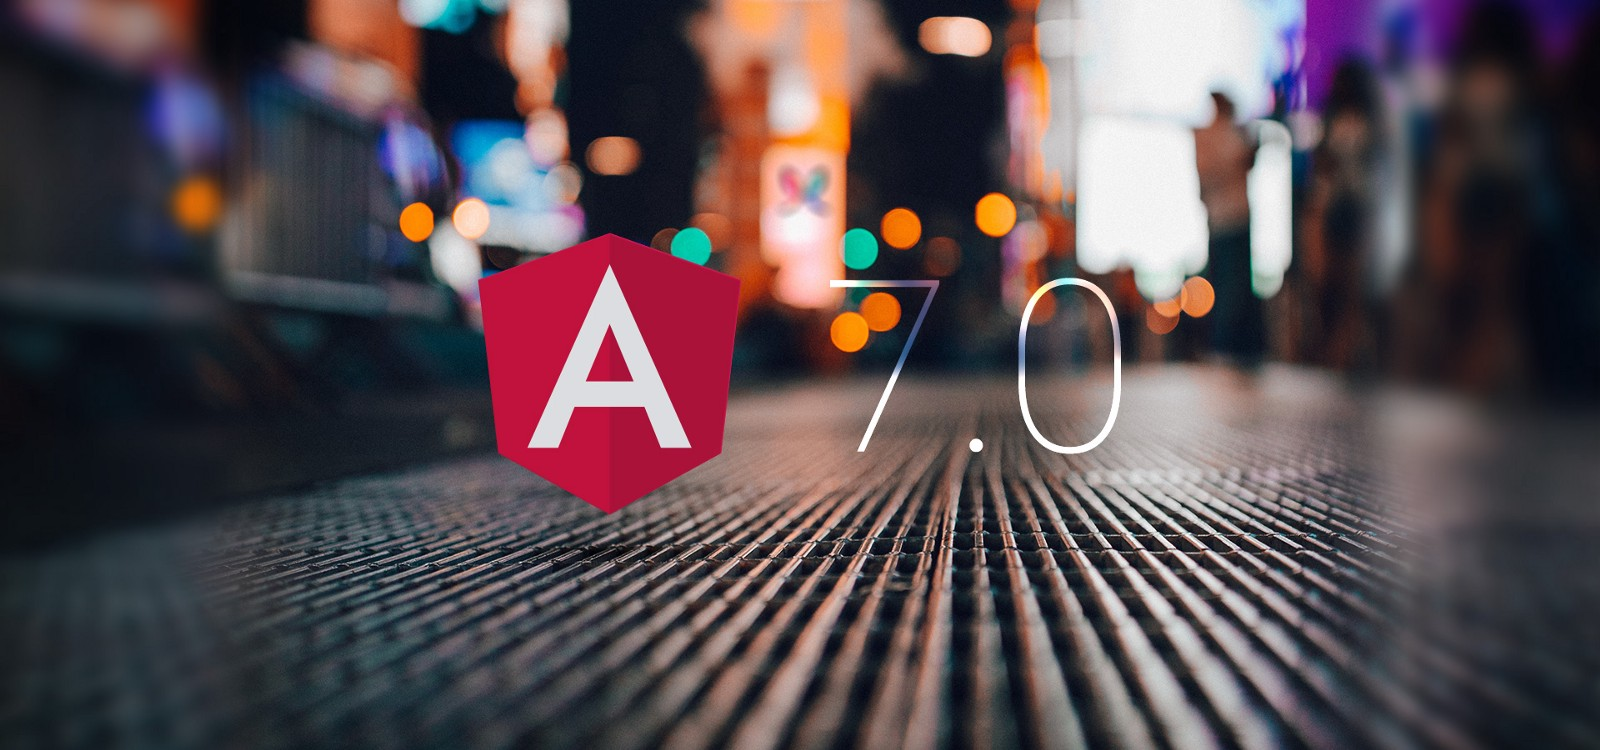 Google Releases Angular 7 0  Here's what you need to know